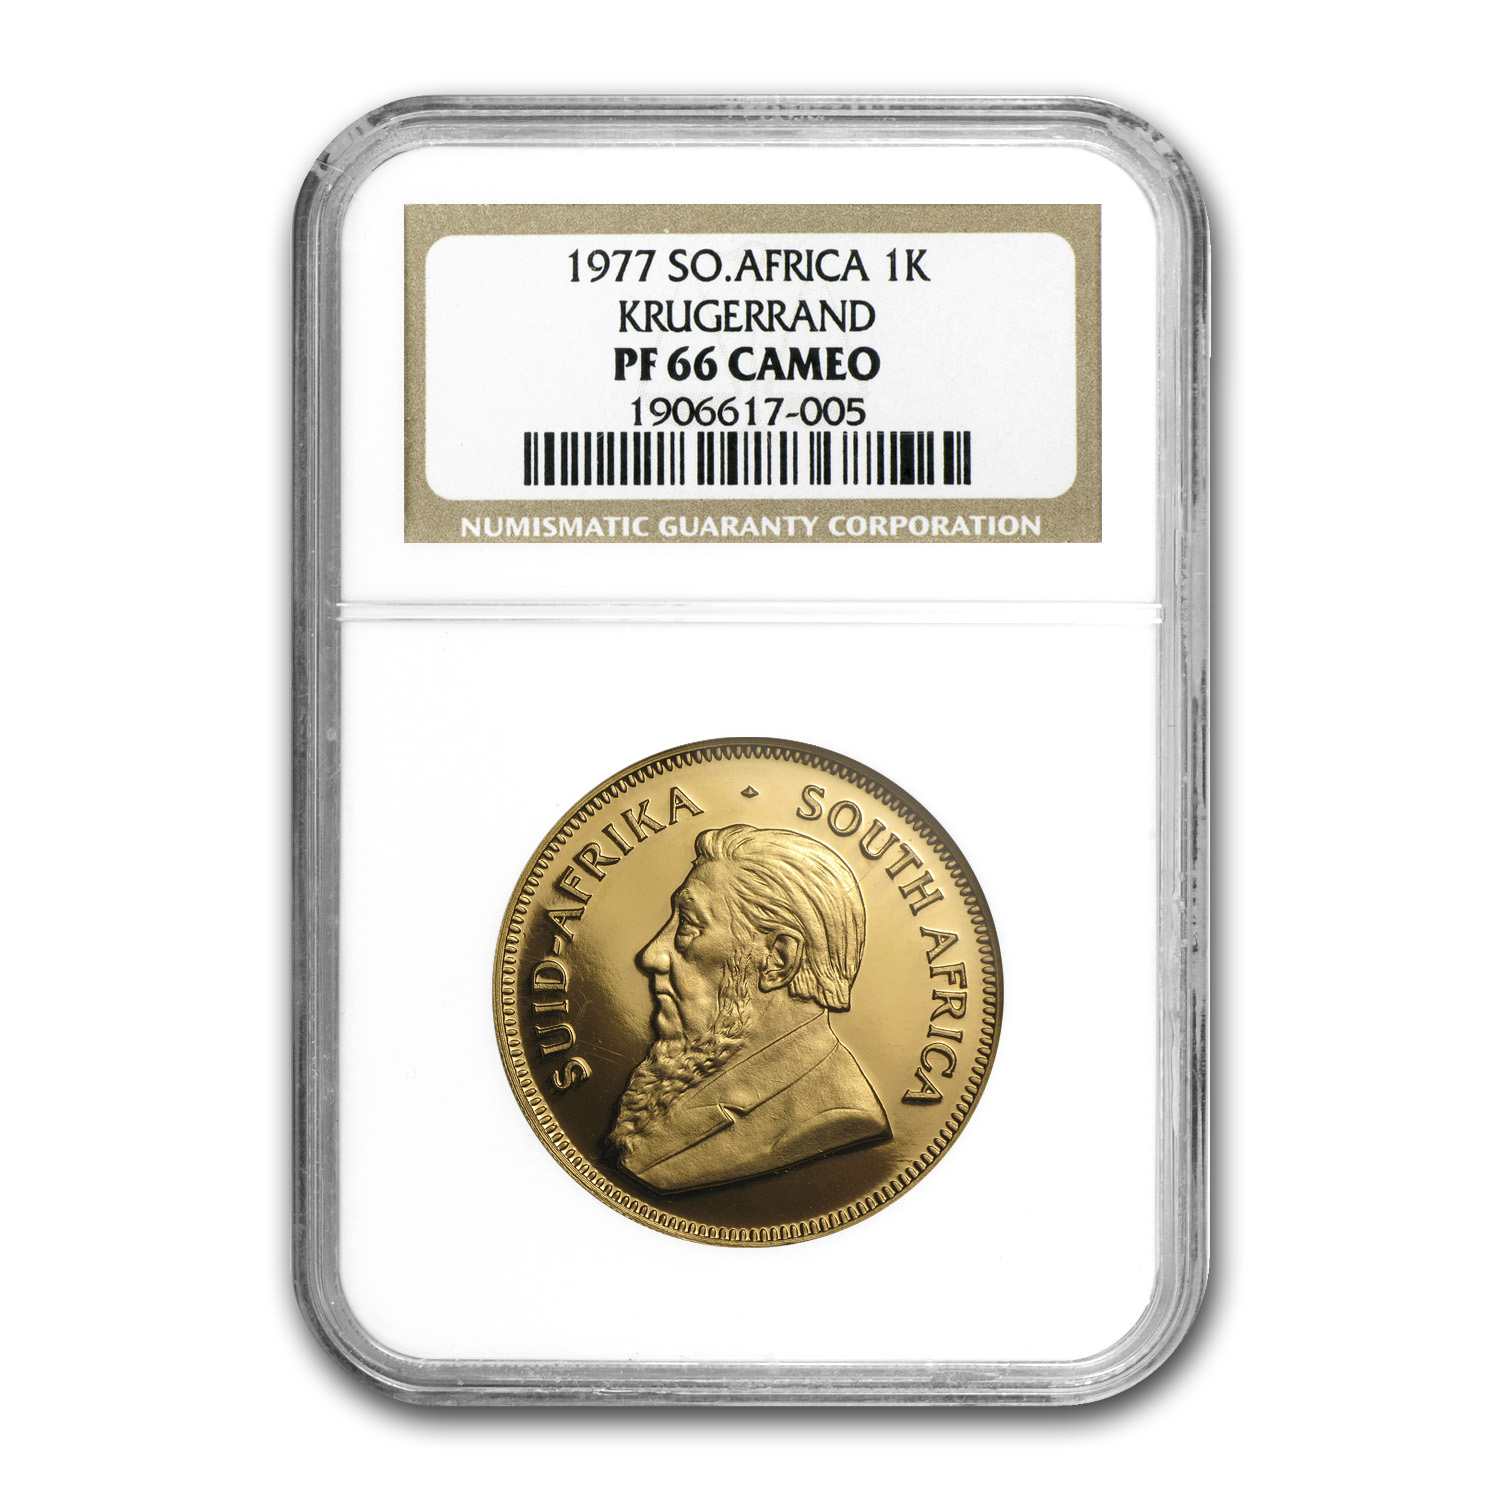 1977 South Africa 1 oz Gold Krugerrand PF-66 Cameo NGC